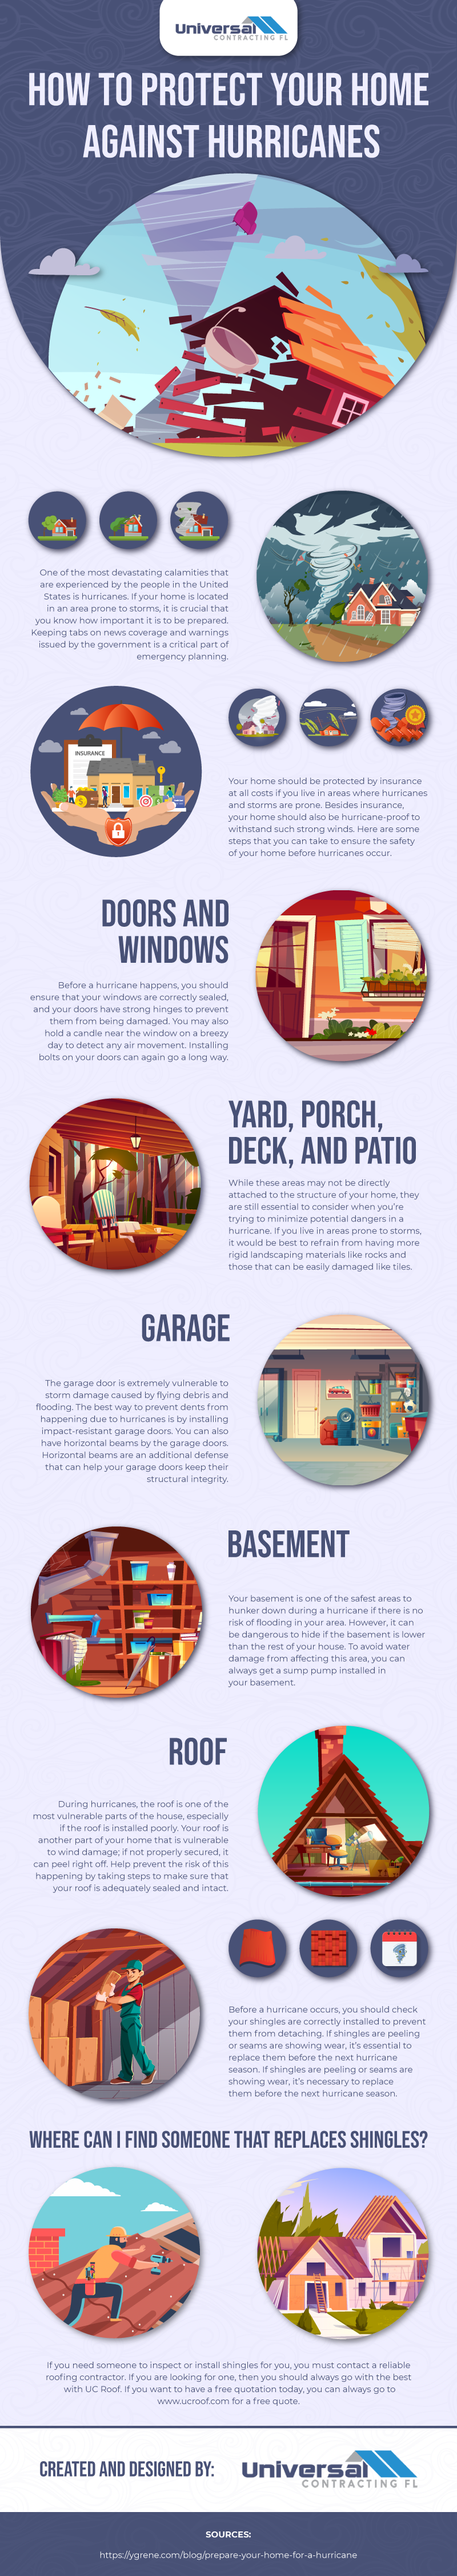 How to protect your home against hurricanes - Infographic